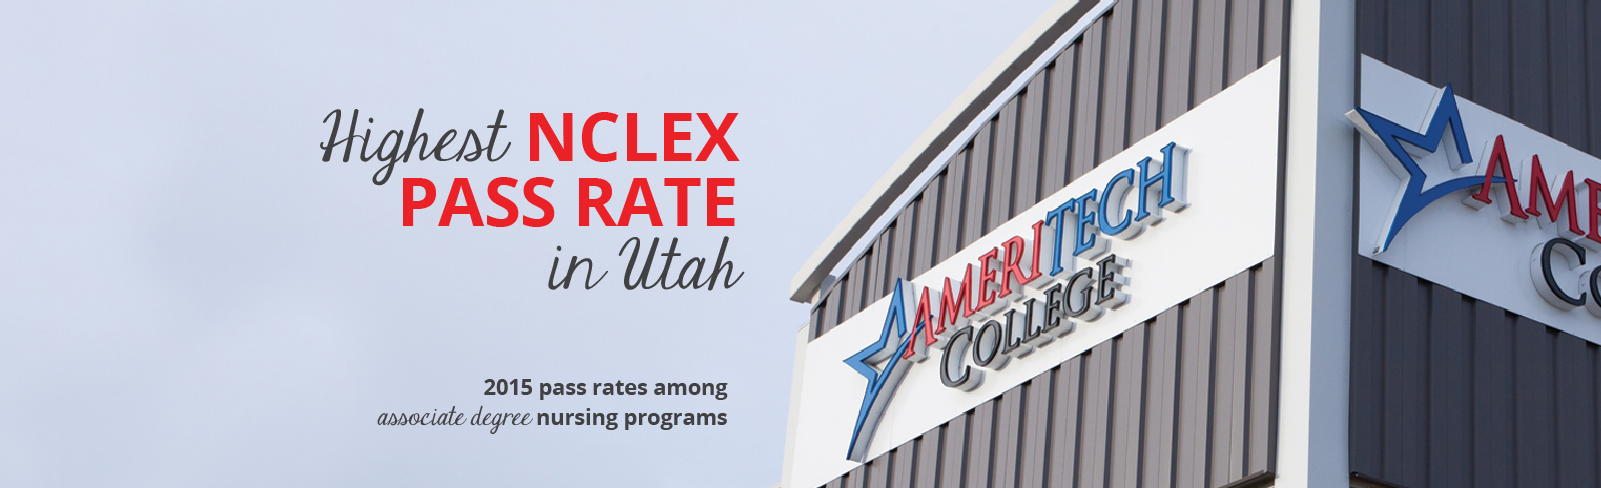 Nursing School Has Some of Utah's Highest NCLEX Pass Rates